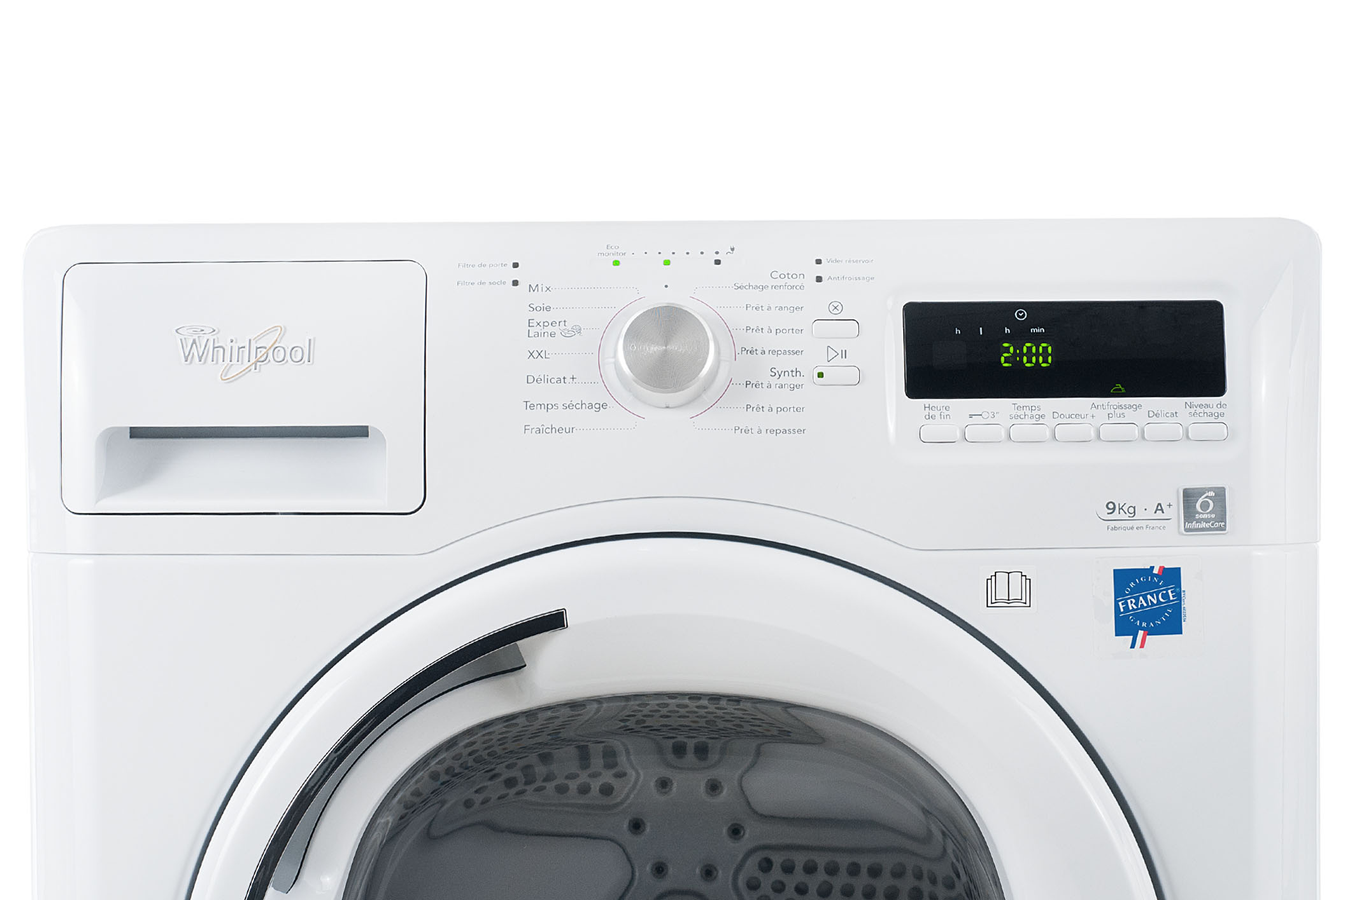 S che linge whirlpool aza9321 blanc 3816958 darty - Seche linge condensation darty ...